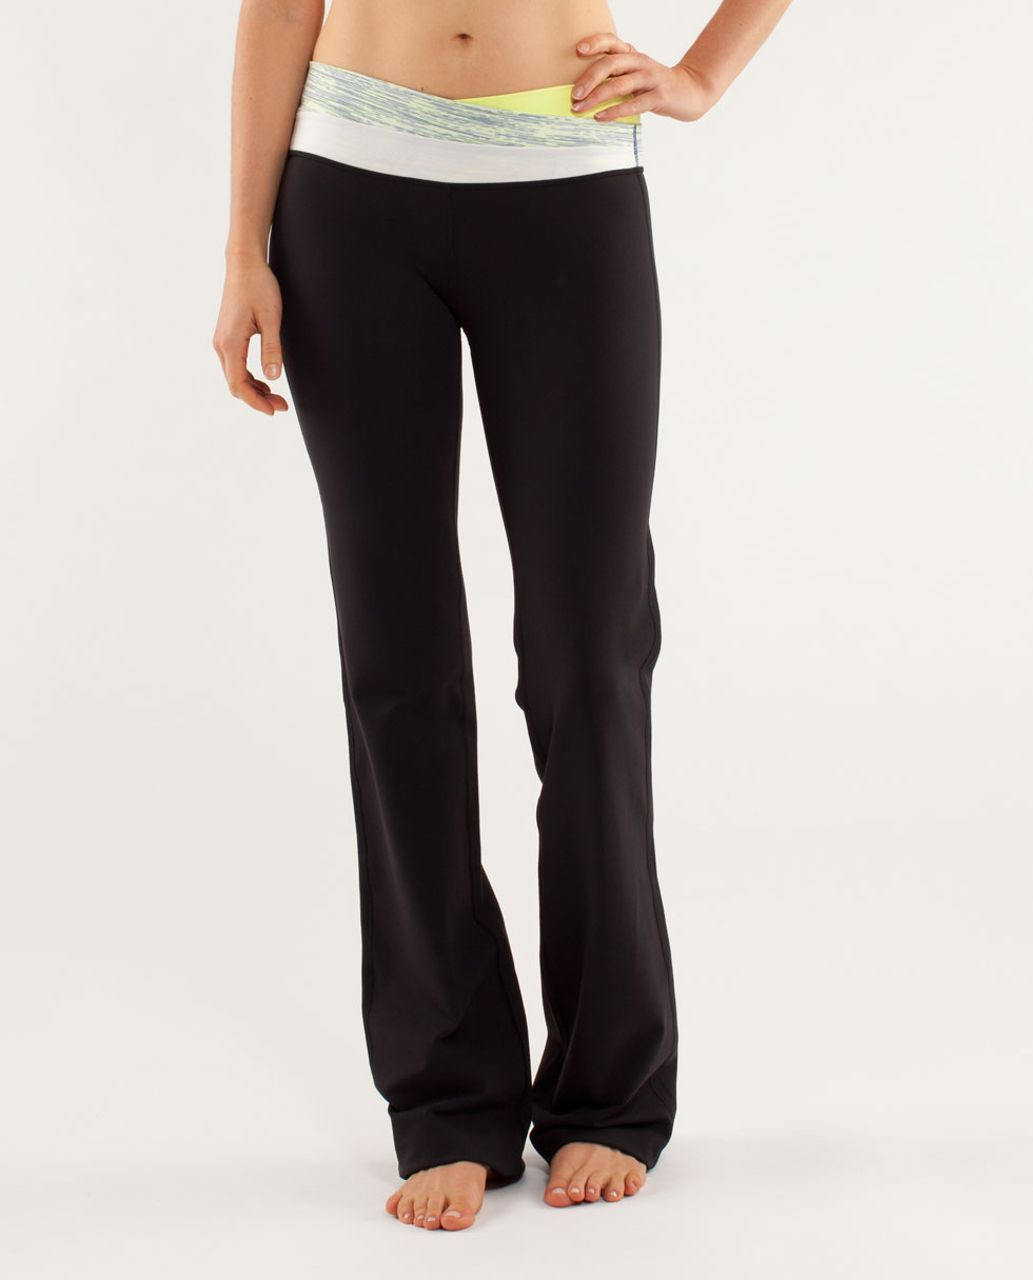 Lululemon Astro Pant (Regular) - Black / Clarity Yellow / Wee Are From Space Polar Cream Clarity Yellow